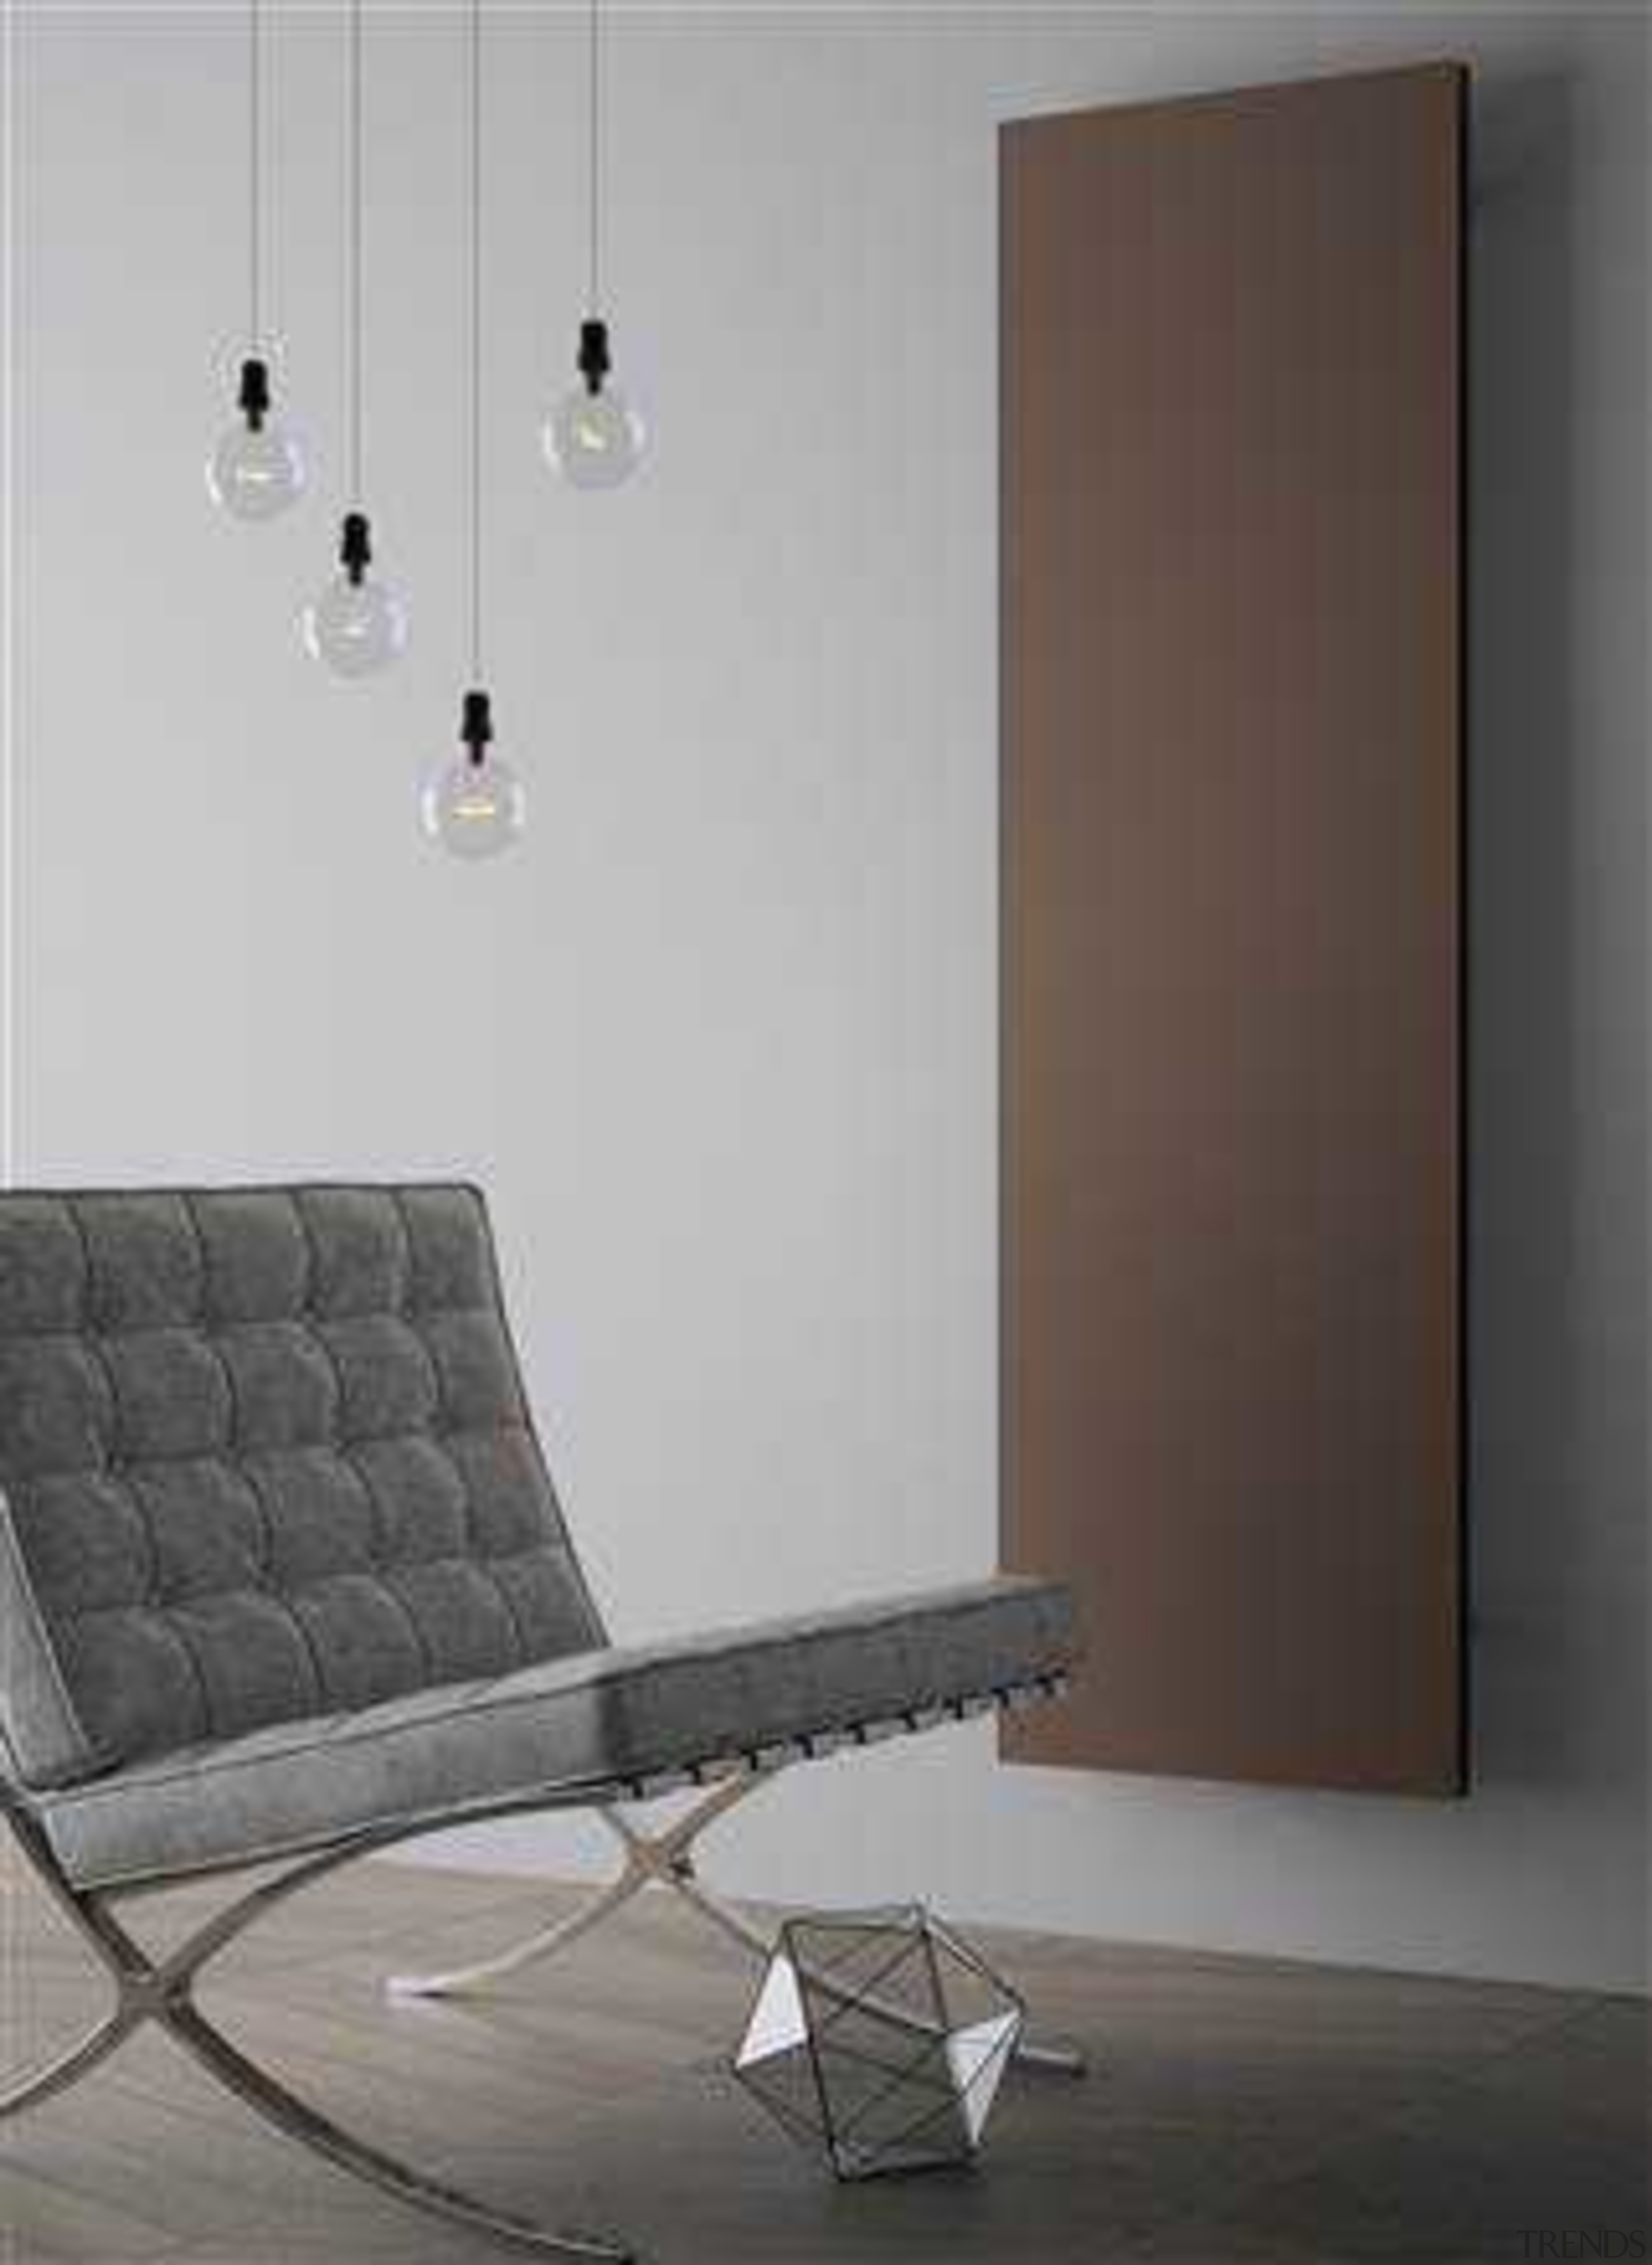 Module Double 10000 440 70 34216 - chair chair, floor, flooring, furniture, interior design, lamp, light fixture, lighting, product, table, wall, gray, black